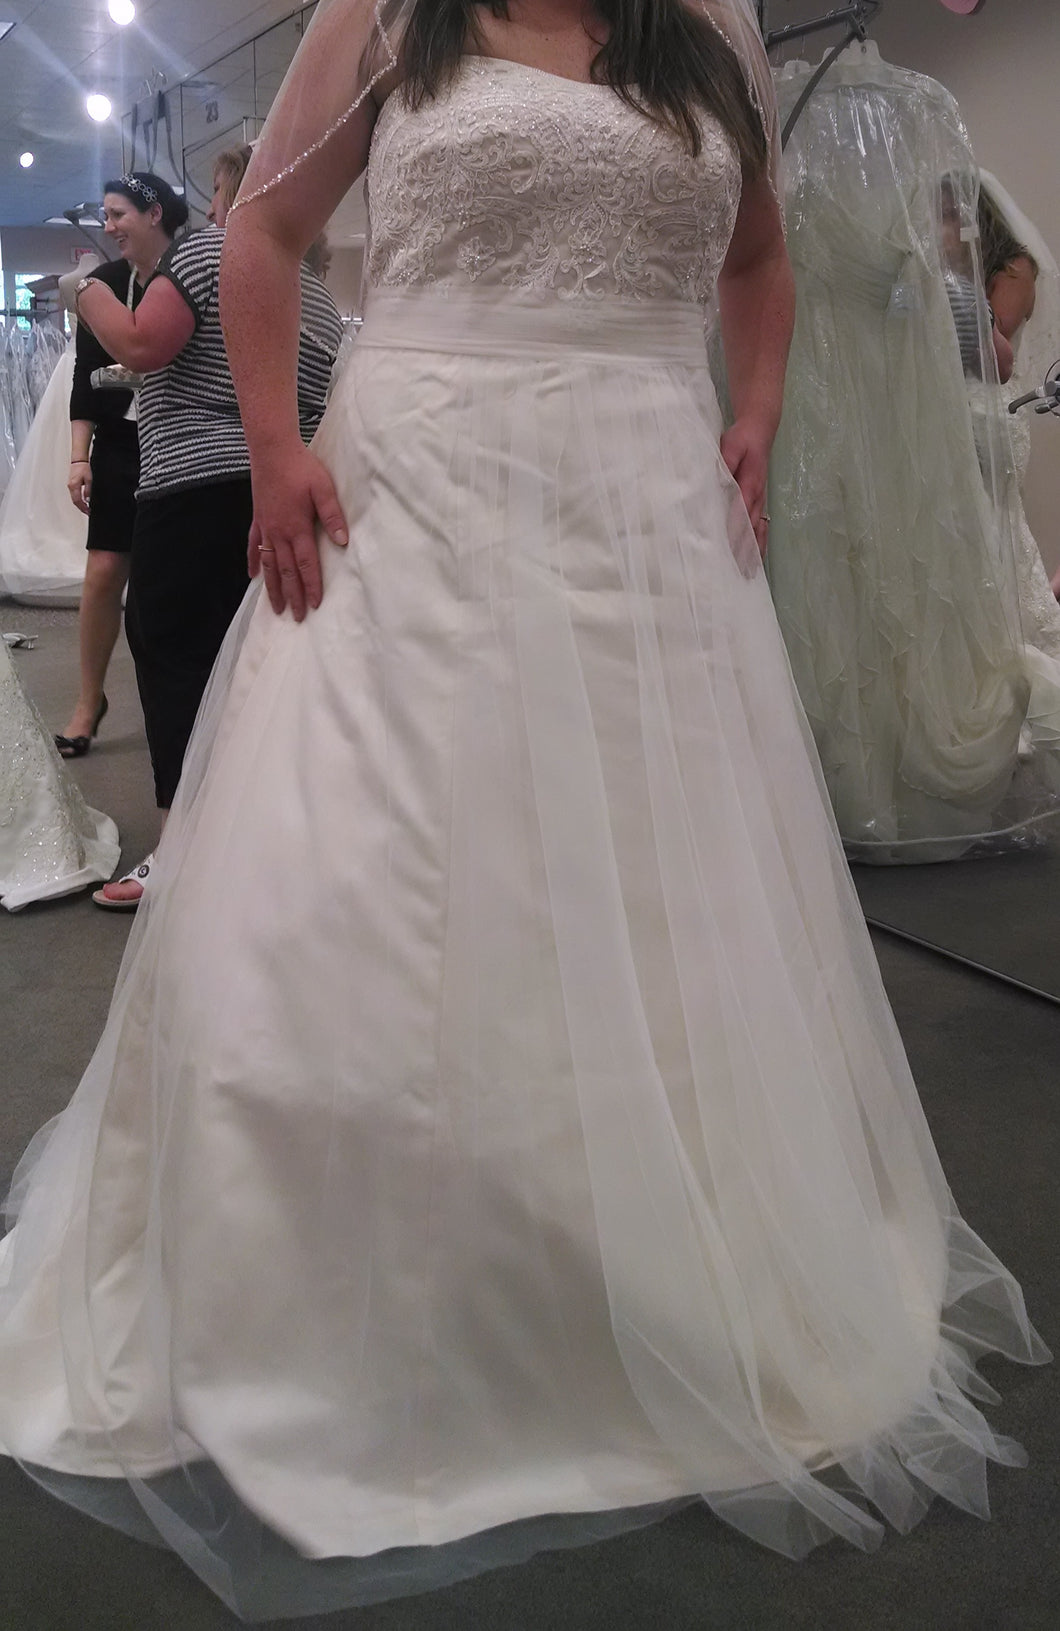 David's Bridal 'Tolle Strapless Soft A' size 16 new wedding dress front view on bride